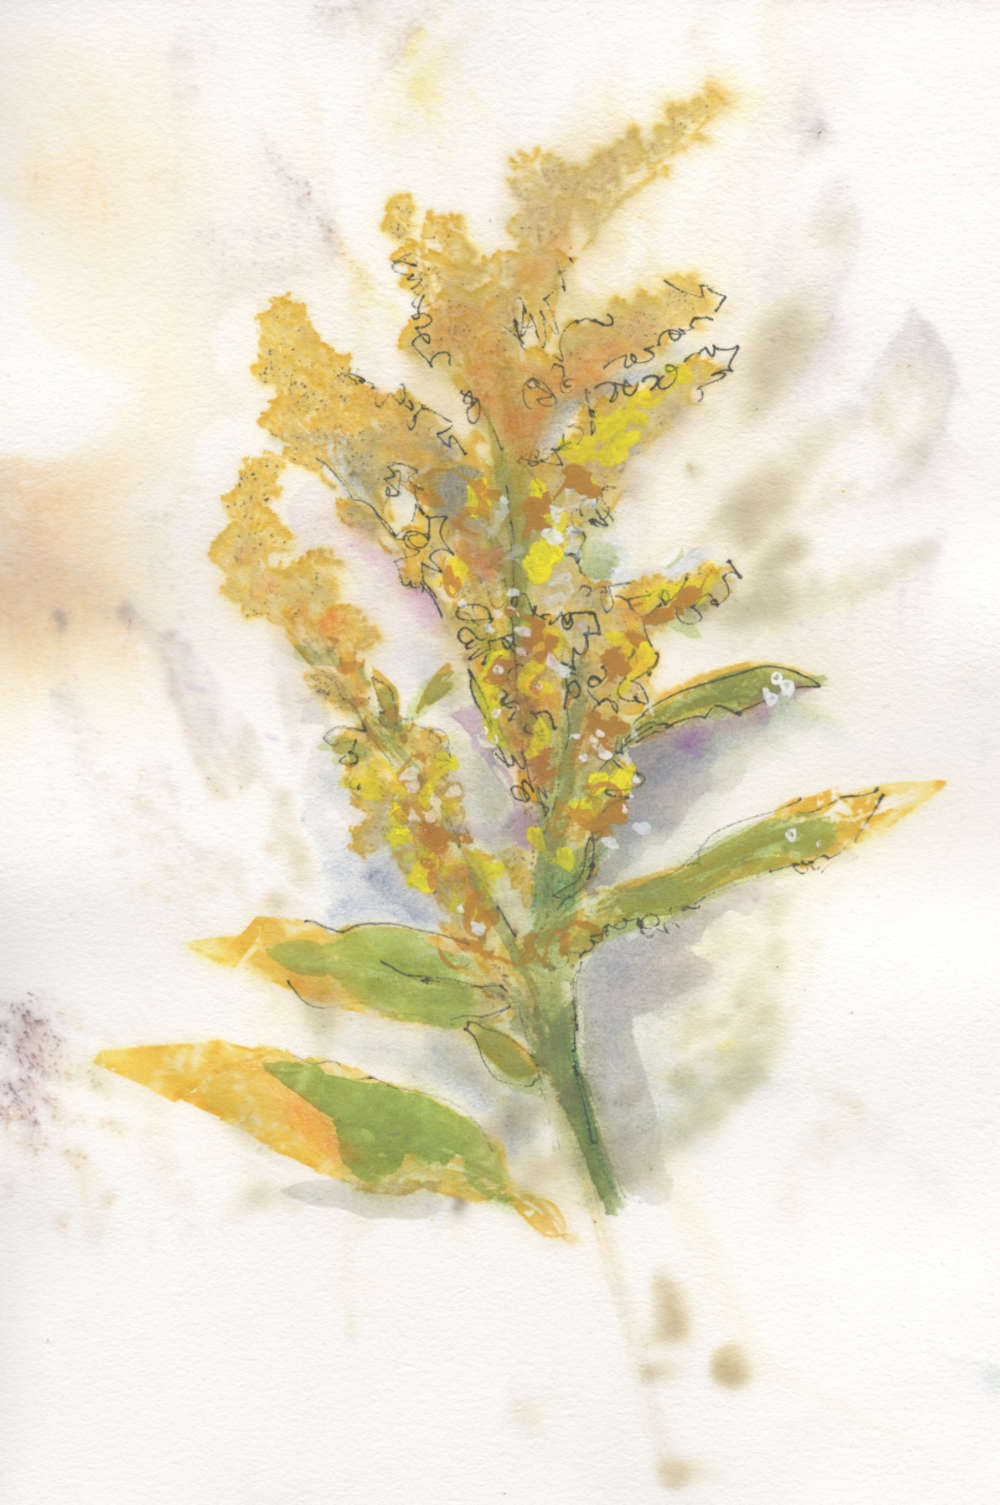 Eco-printed paper using broom flower enhanced with watercolor and ink.